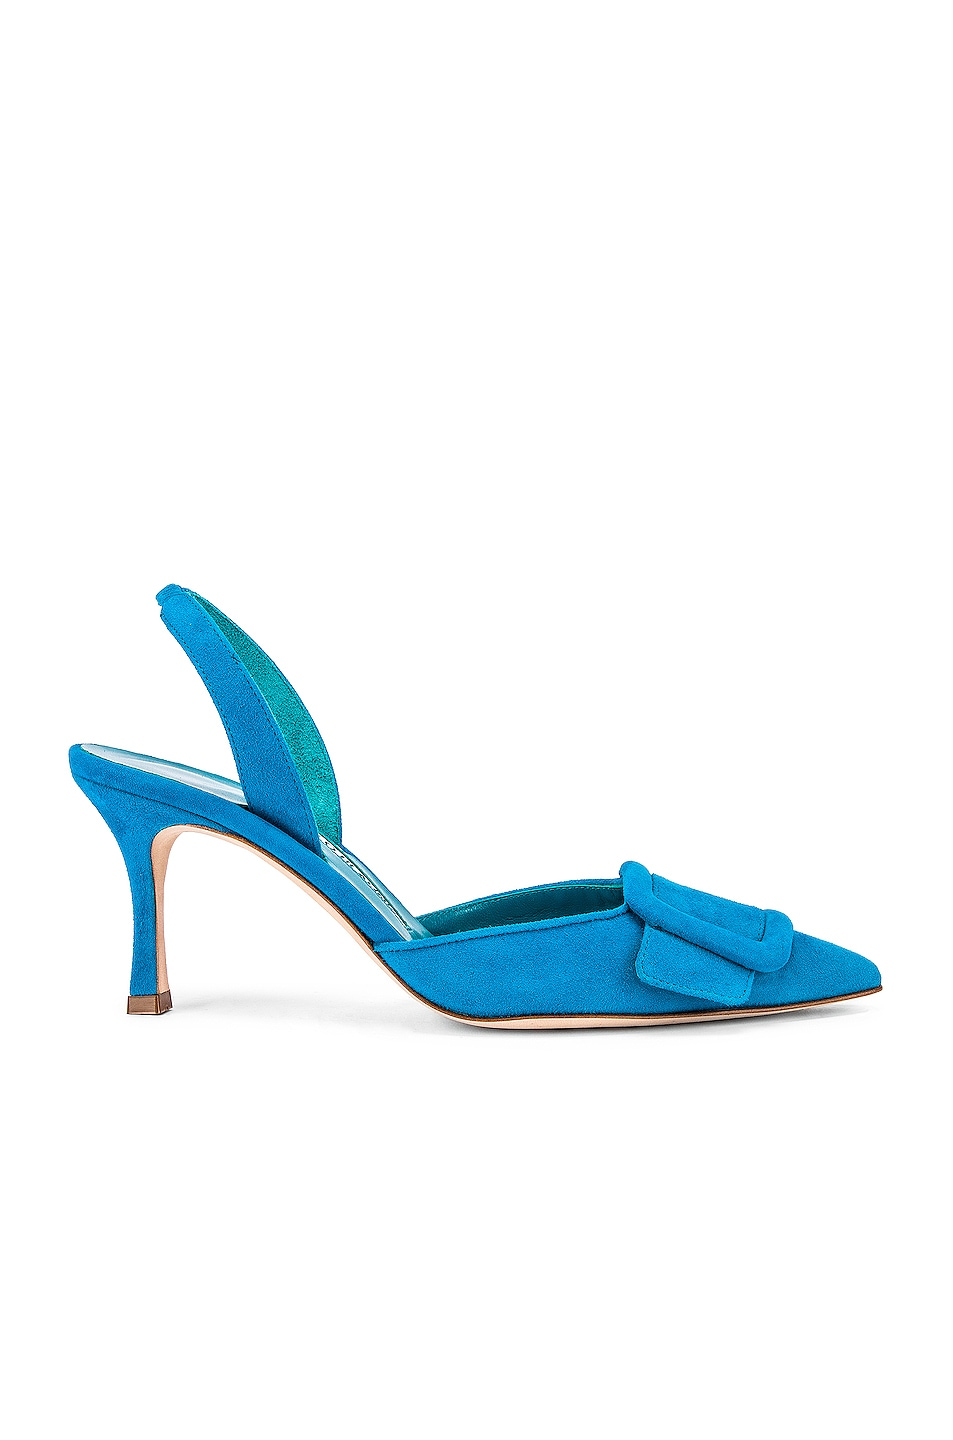 Image 1 of Manolo Blahnik Suede May 70 Slingback in Asiago Turquoise